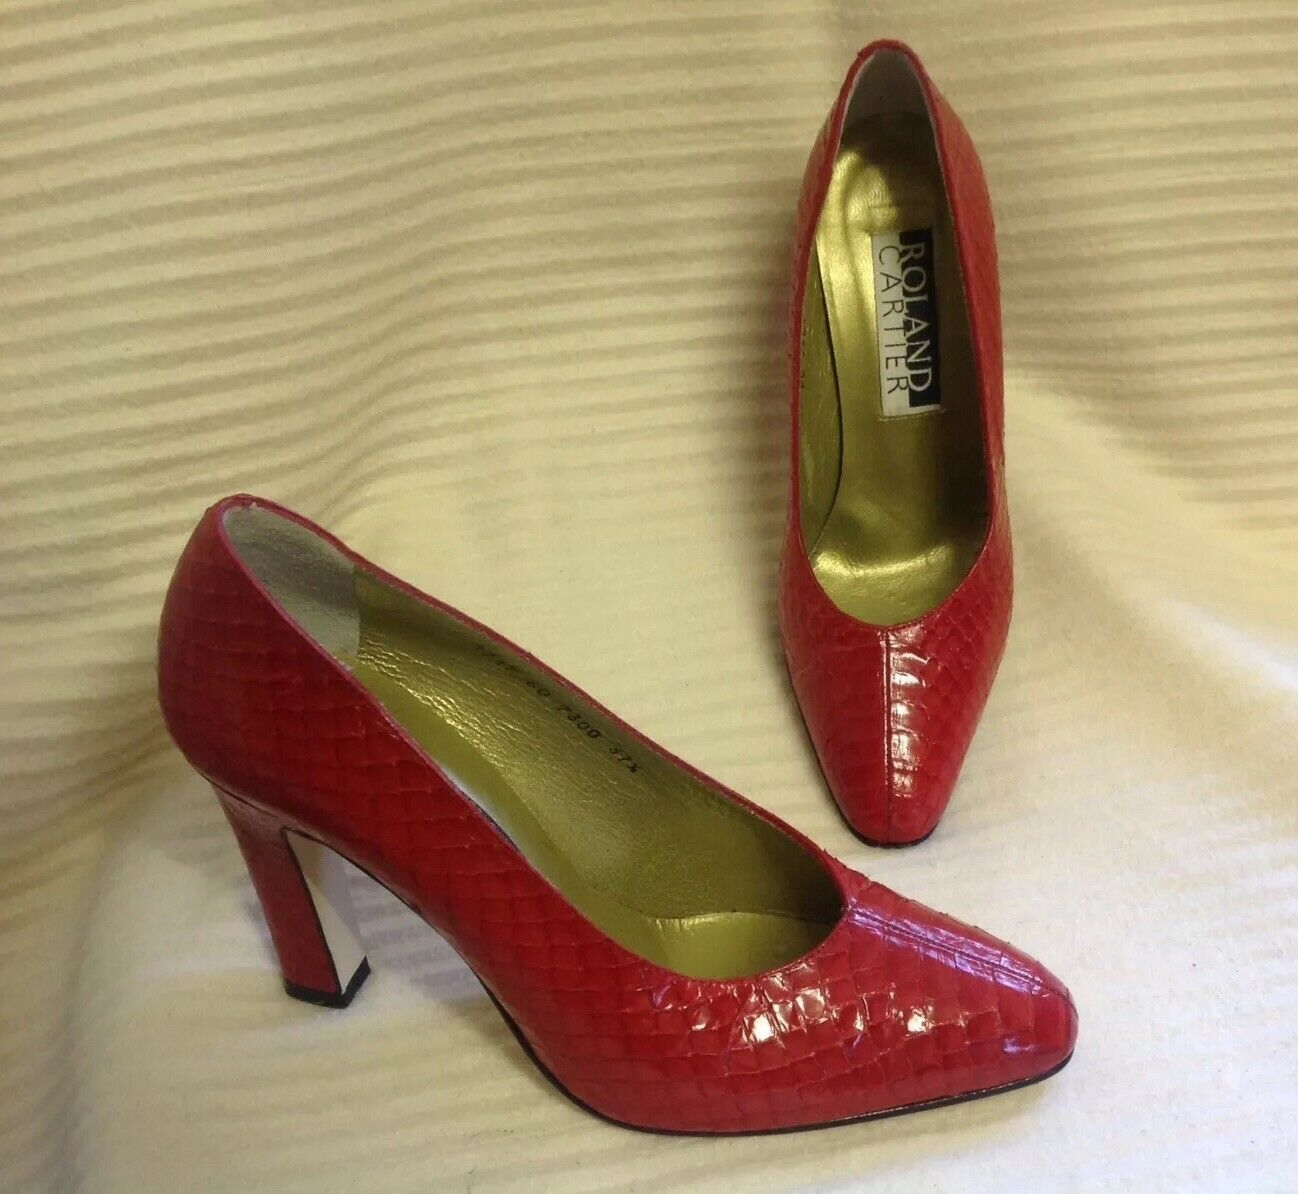 VINTAGE WOMEN'S ROLAND CARTIER RED LEATHER SKIN EFFECT HEELED COURT SHOES 37.5